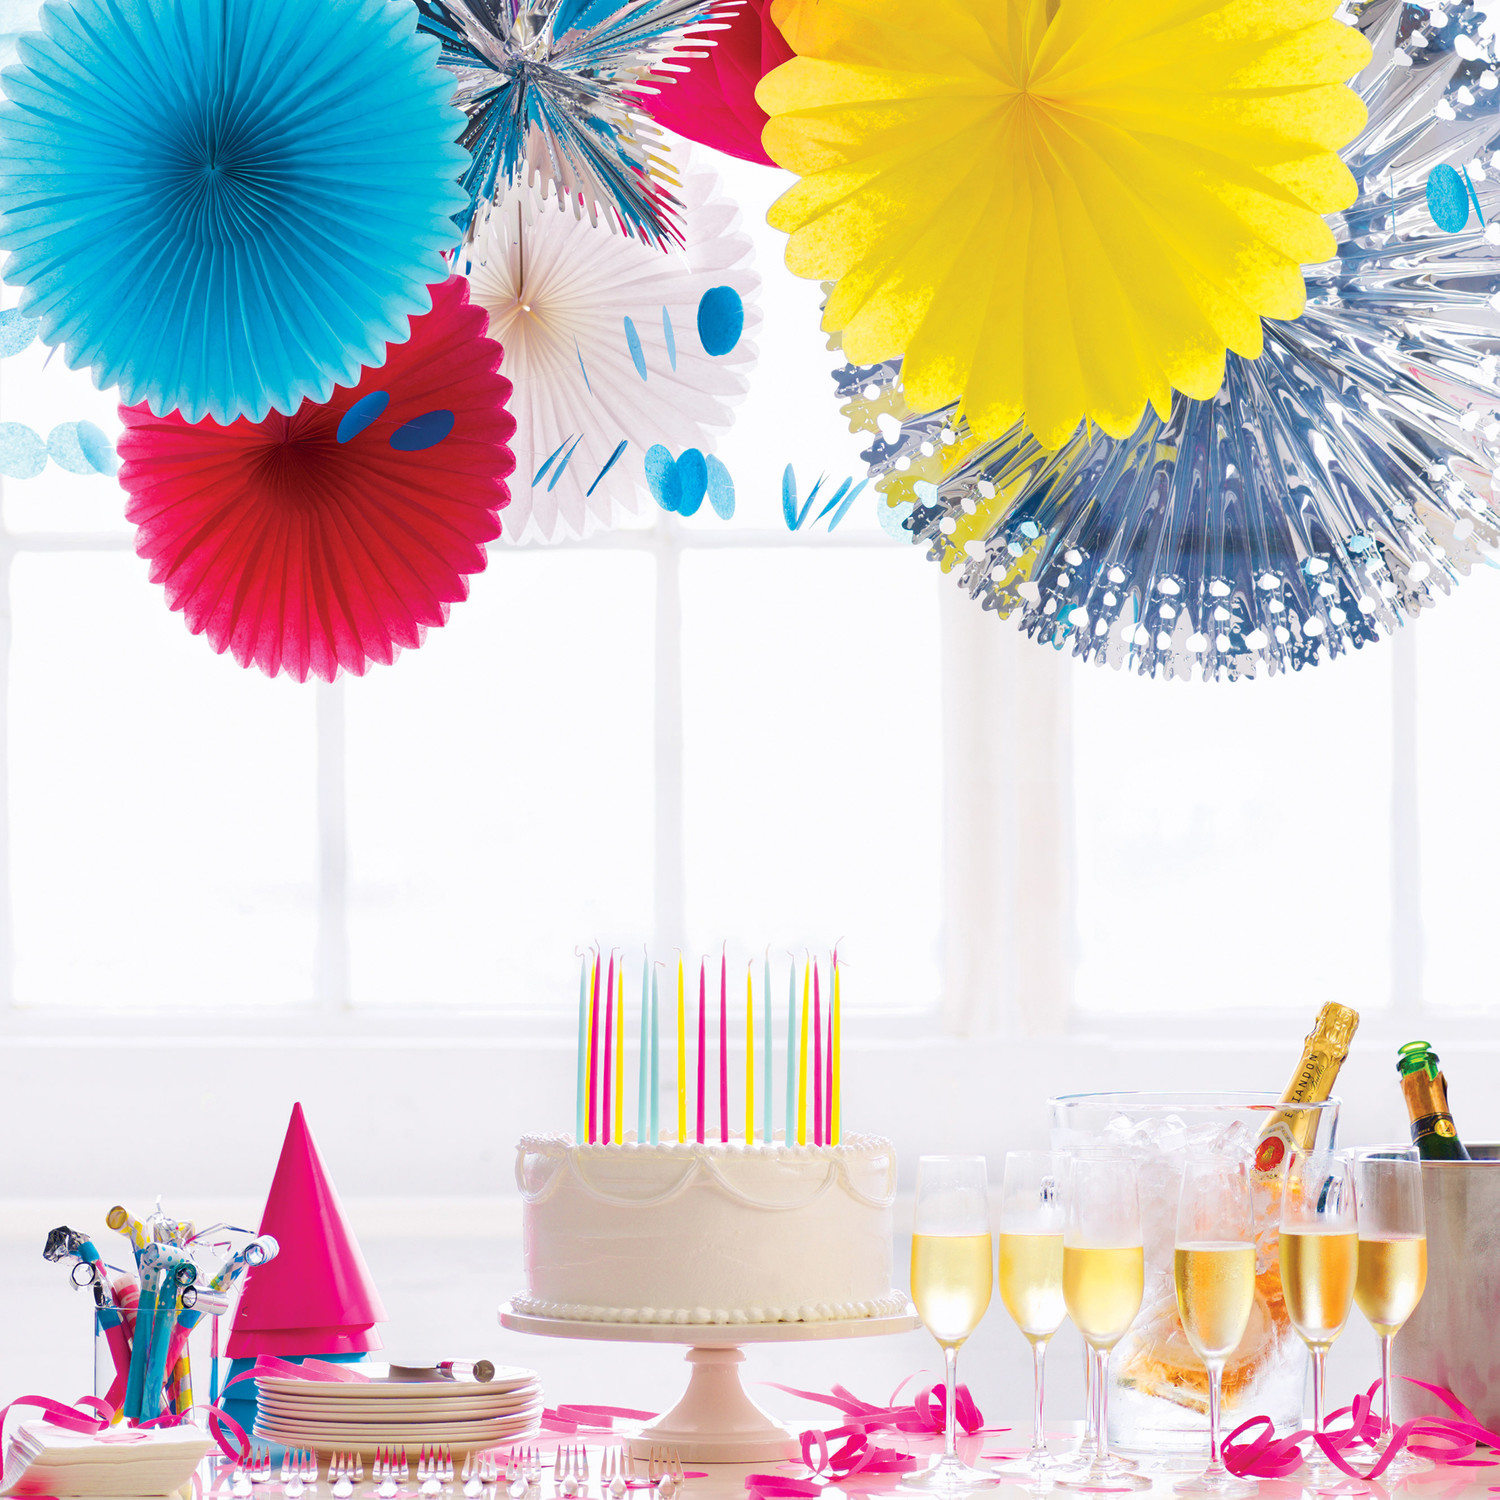 7 Tips to Hosting a Stress-Free Kids\' Birthday Party